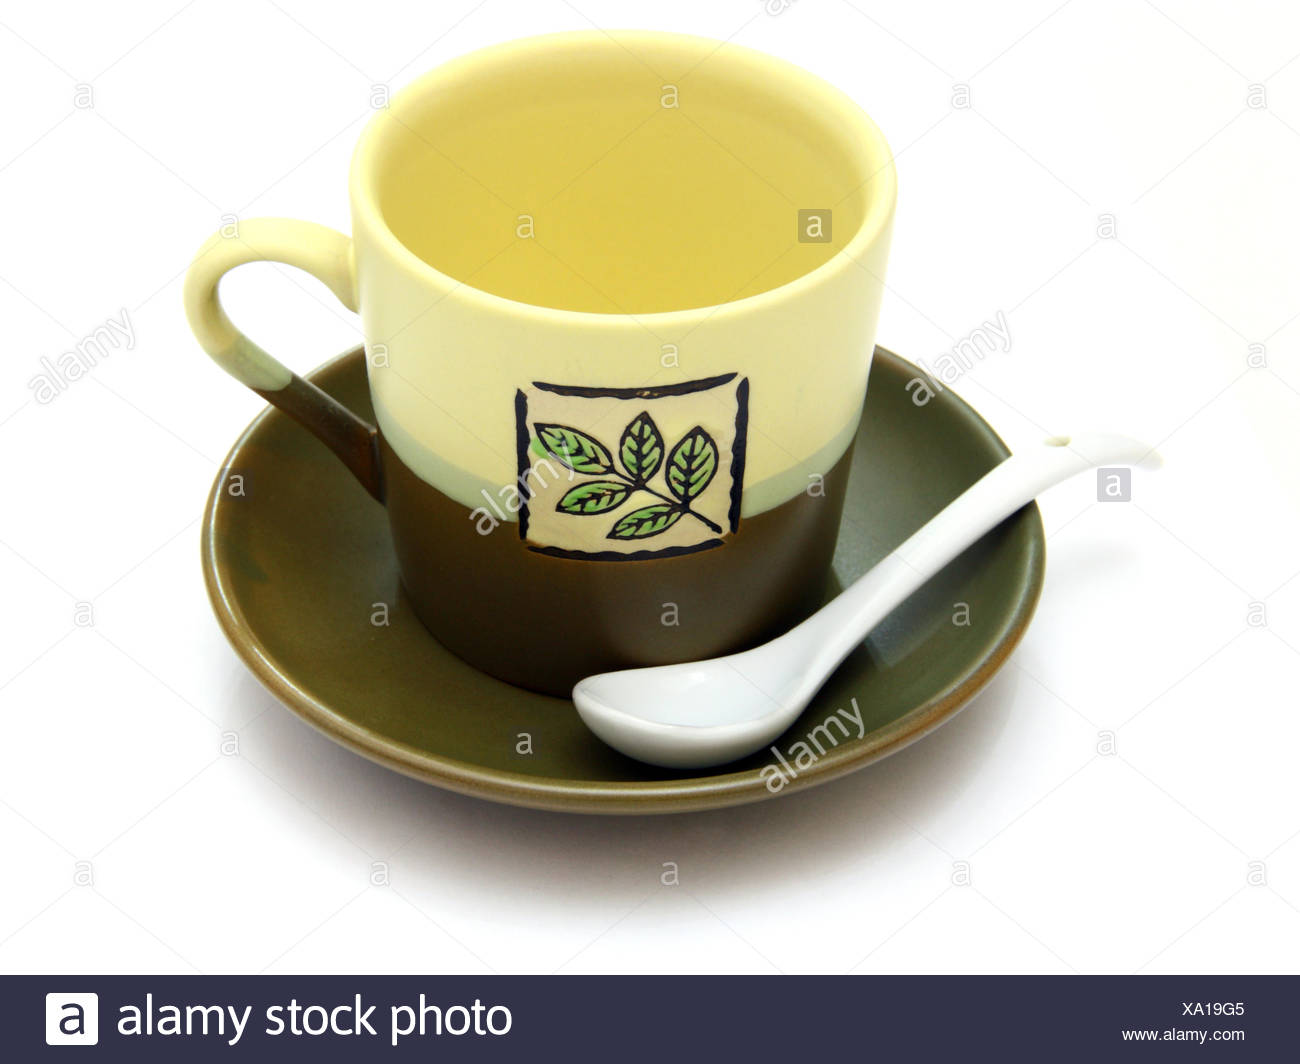 Ceramic Cup On A Saucer With Drawing Stock Photo Alamy